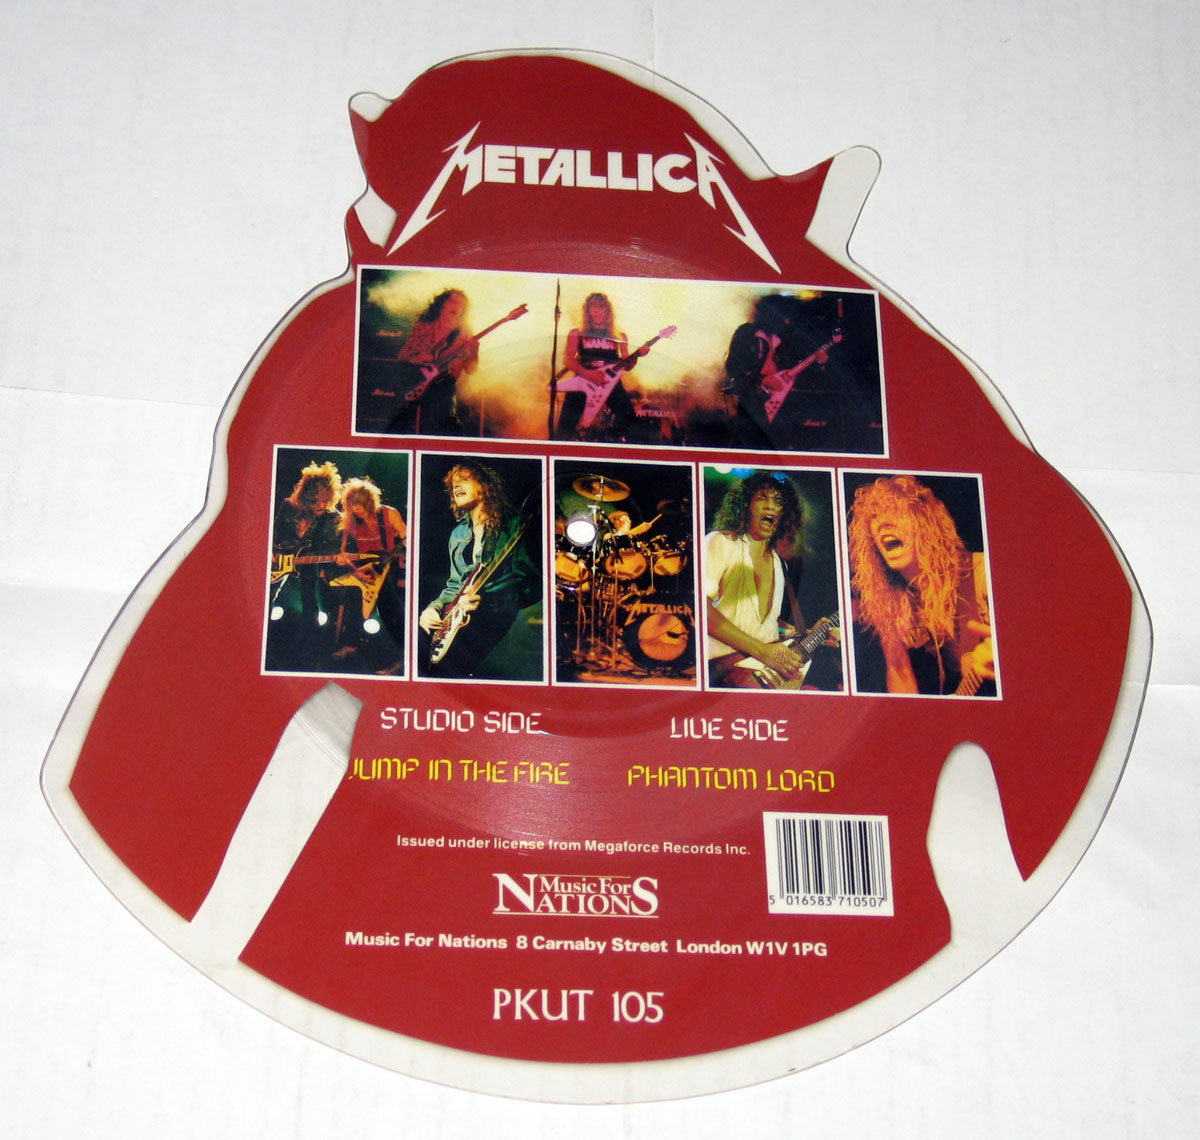 High Resolution Photo Metallica Jump In The Fire Shaped Picture Disc Vinyl Record